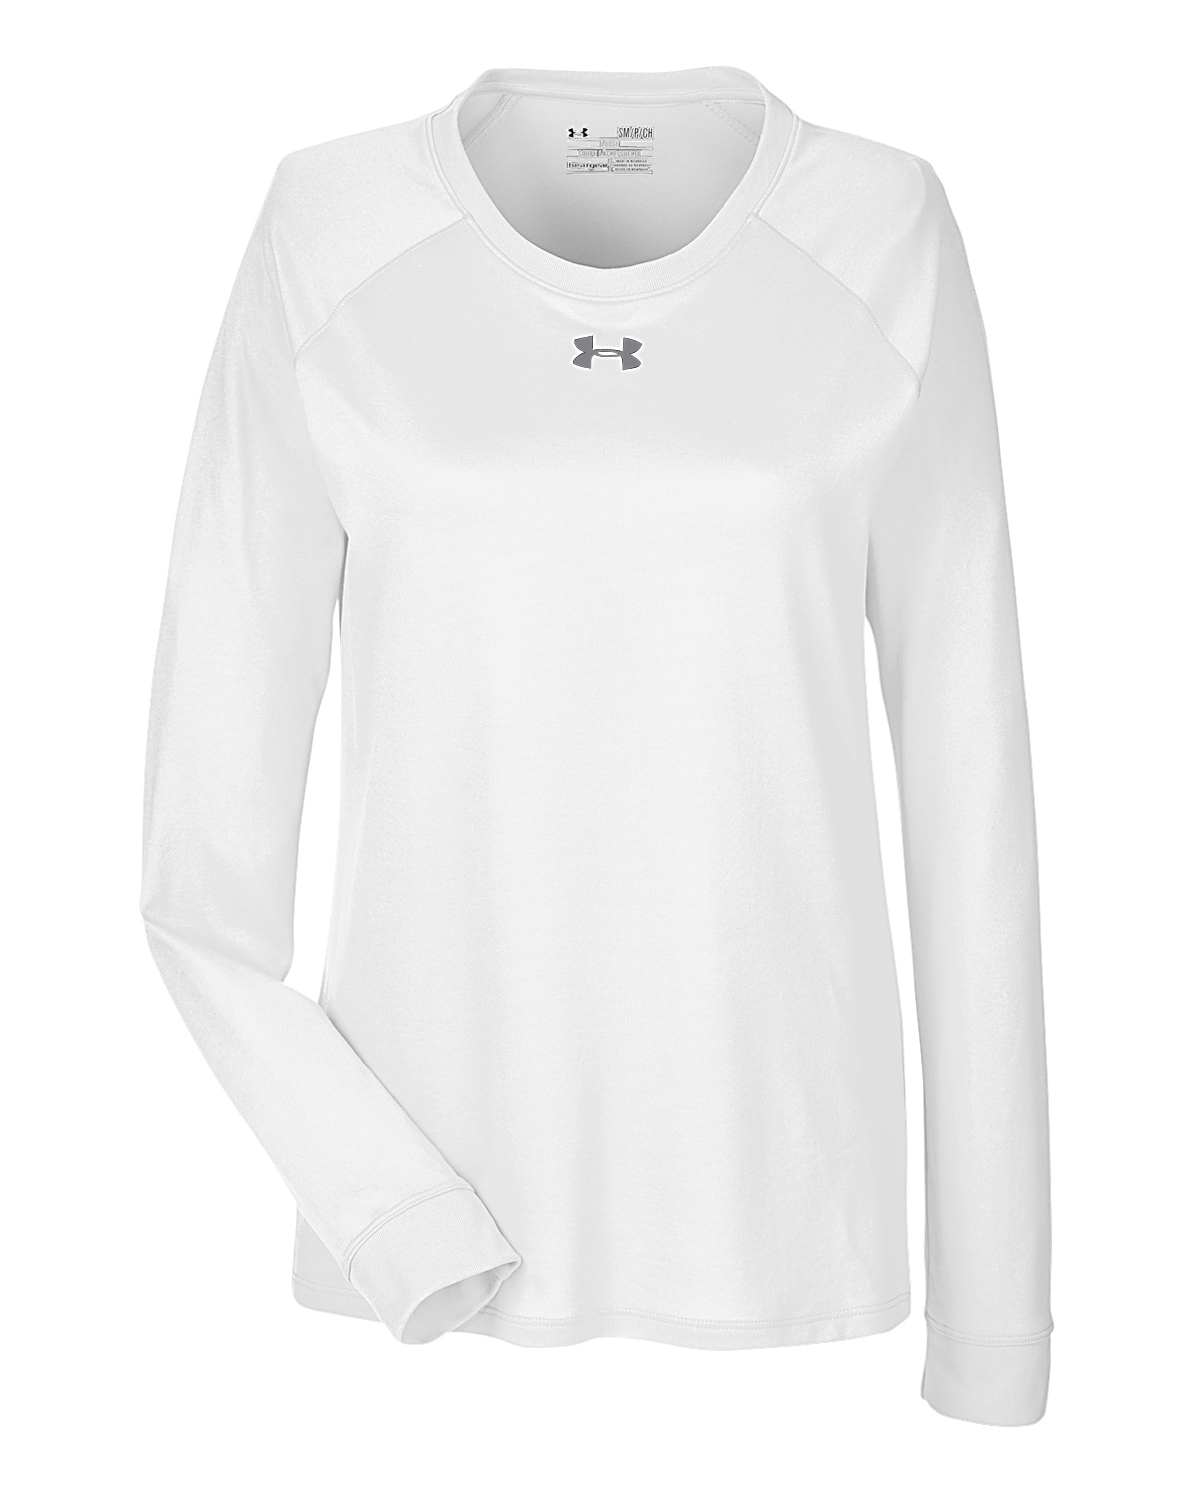 super popular nice cheap coupon code Under Armour 1268483 - Ladies's UA Long Sleeve Locker Tee